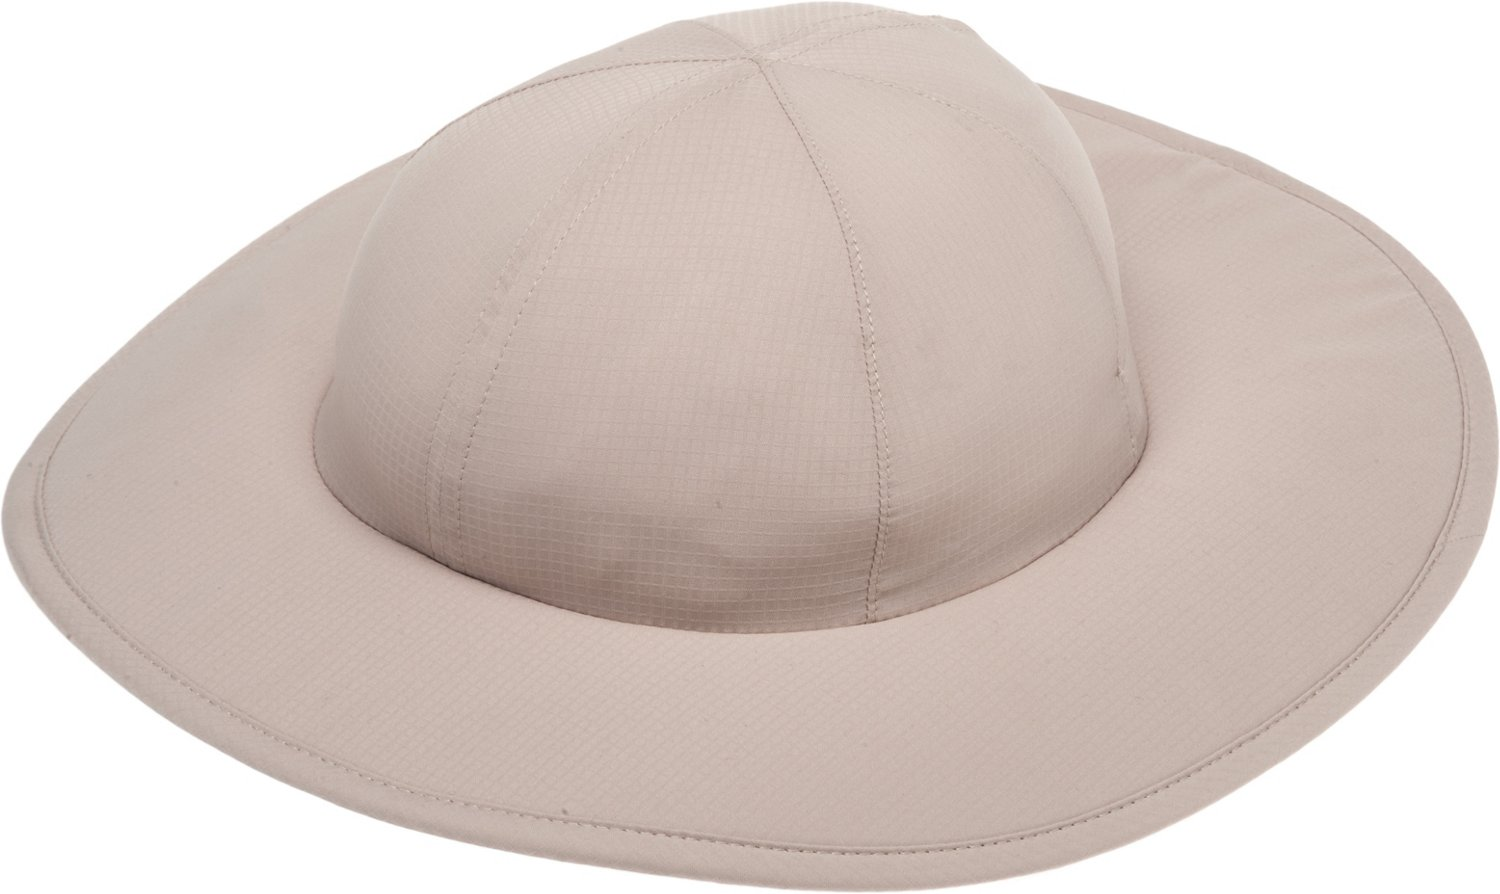 69ea2bc0 Display product reviews for Columbia Sportswear Women's Sun Goddess II  Boonie Hat